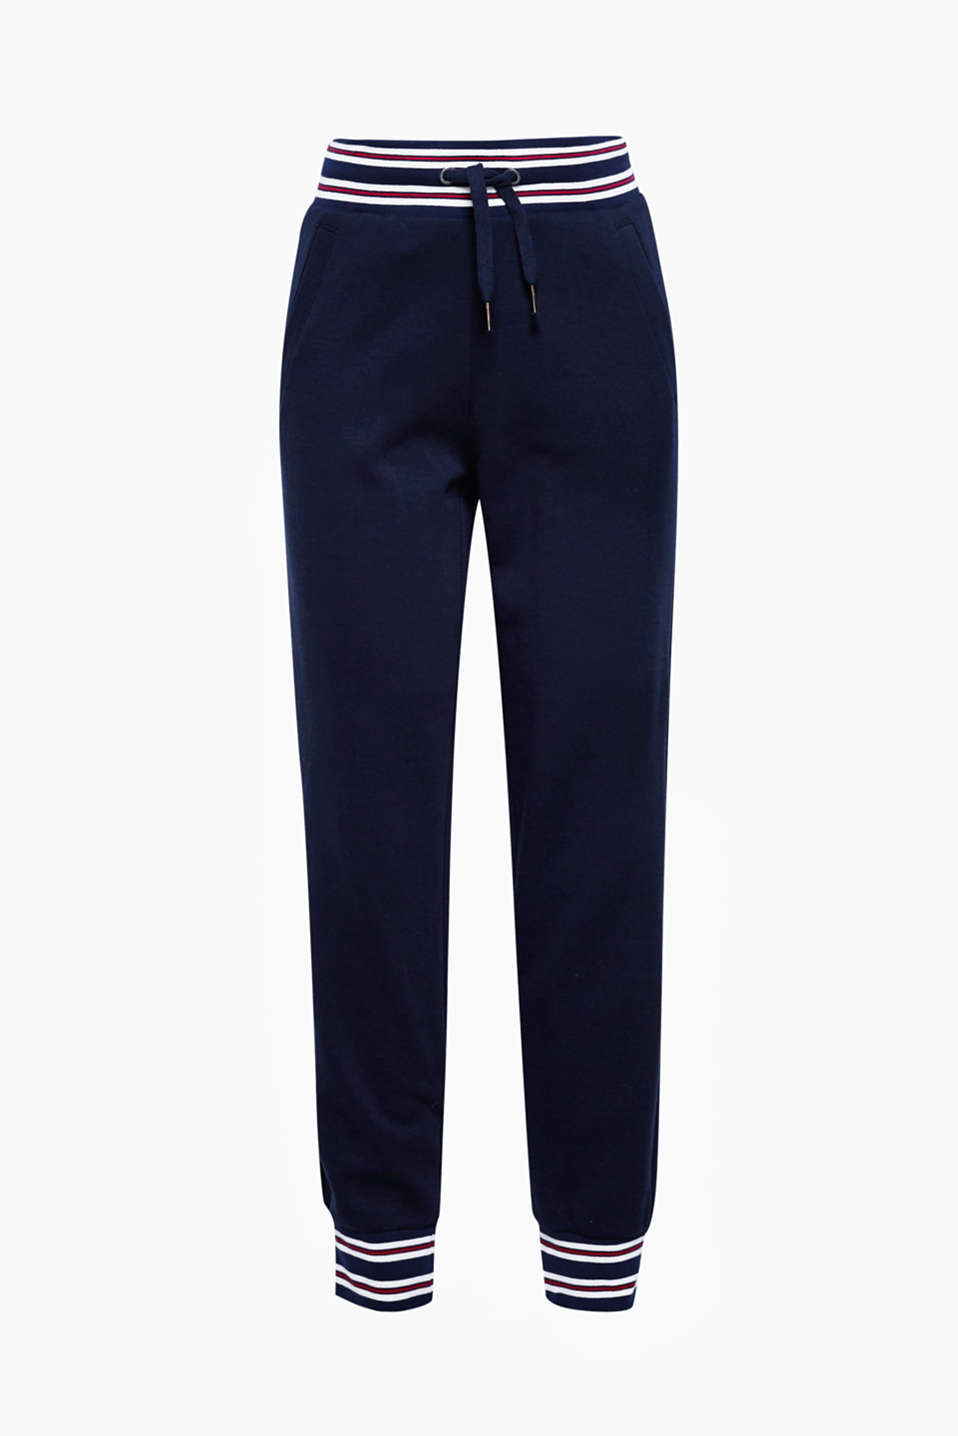 These tracksuit bottoms in blended cotton with striped borders are incredibly comfortable and have a sporty style!